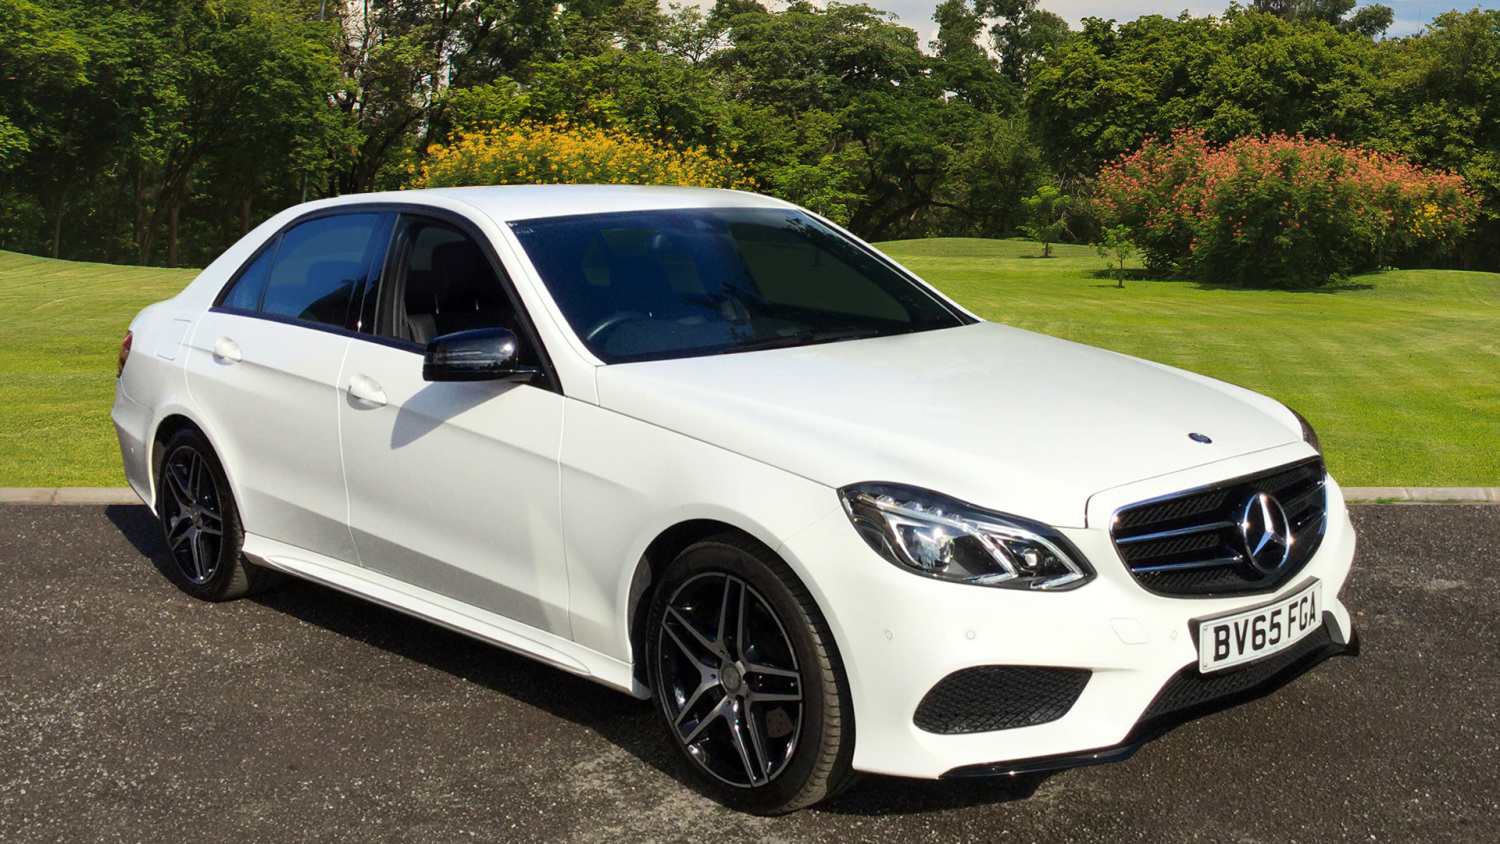 Used Mercedes Benz E Class E220 Bluetec Amg Night Edition 4dr 7g Tronic Diesel Saloon For Sale